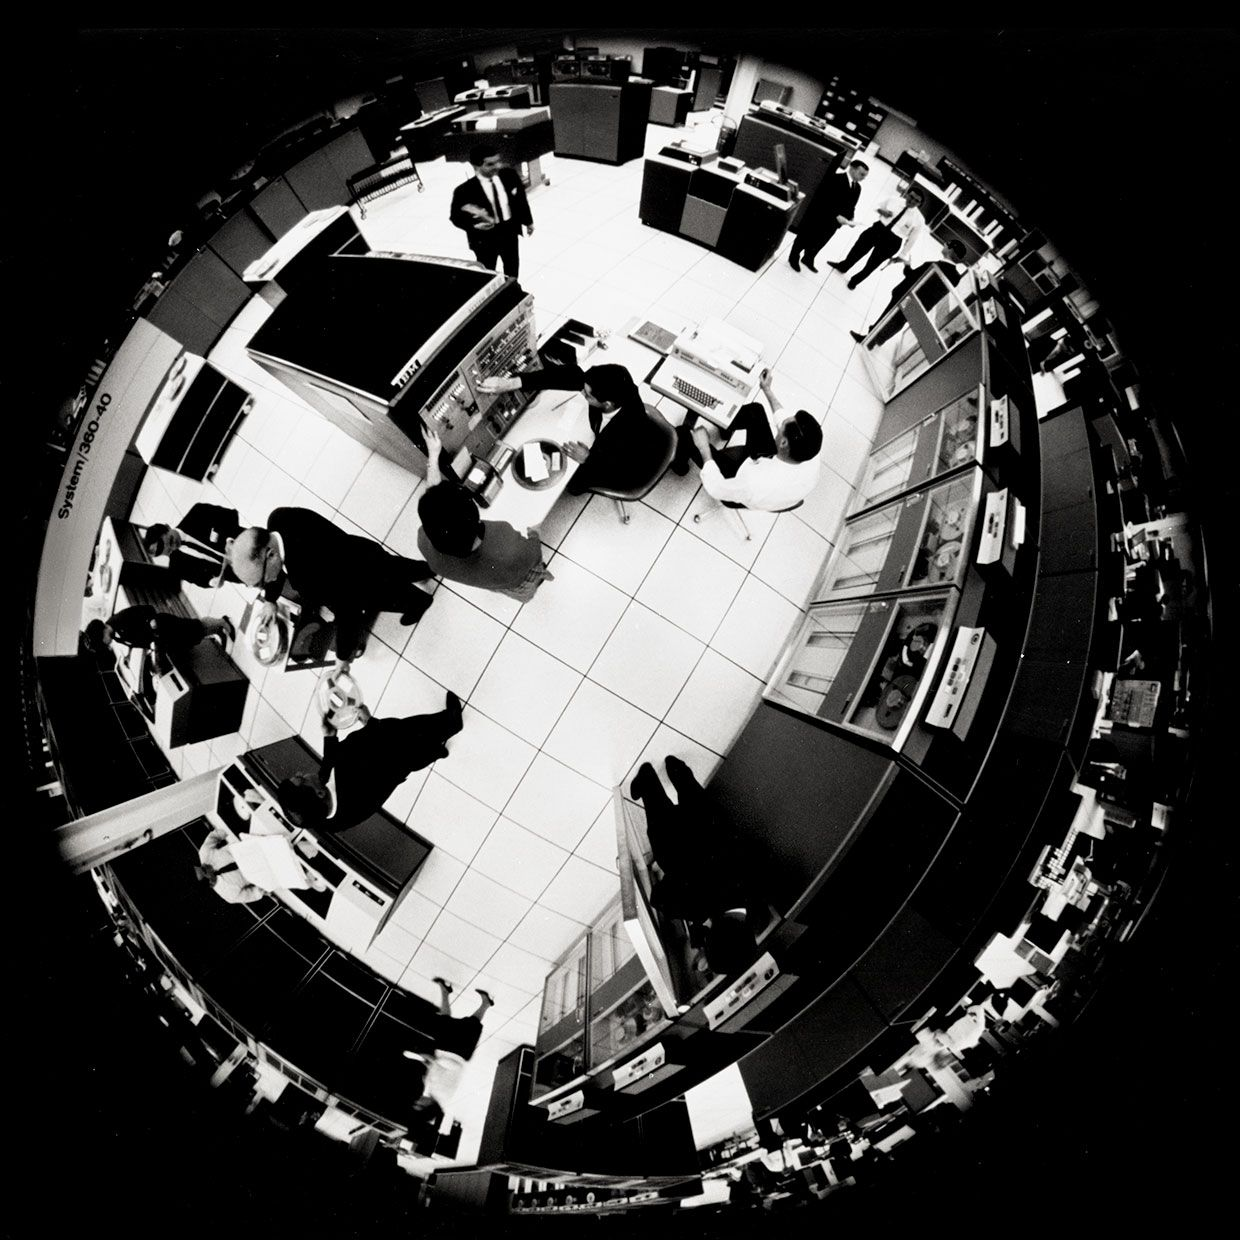 Fisheye view of the IBM System 360